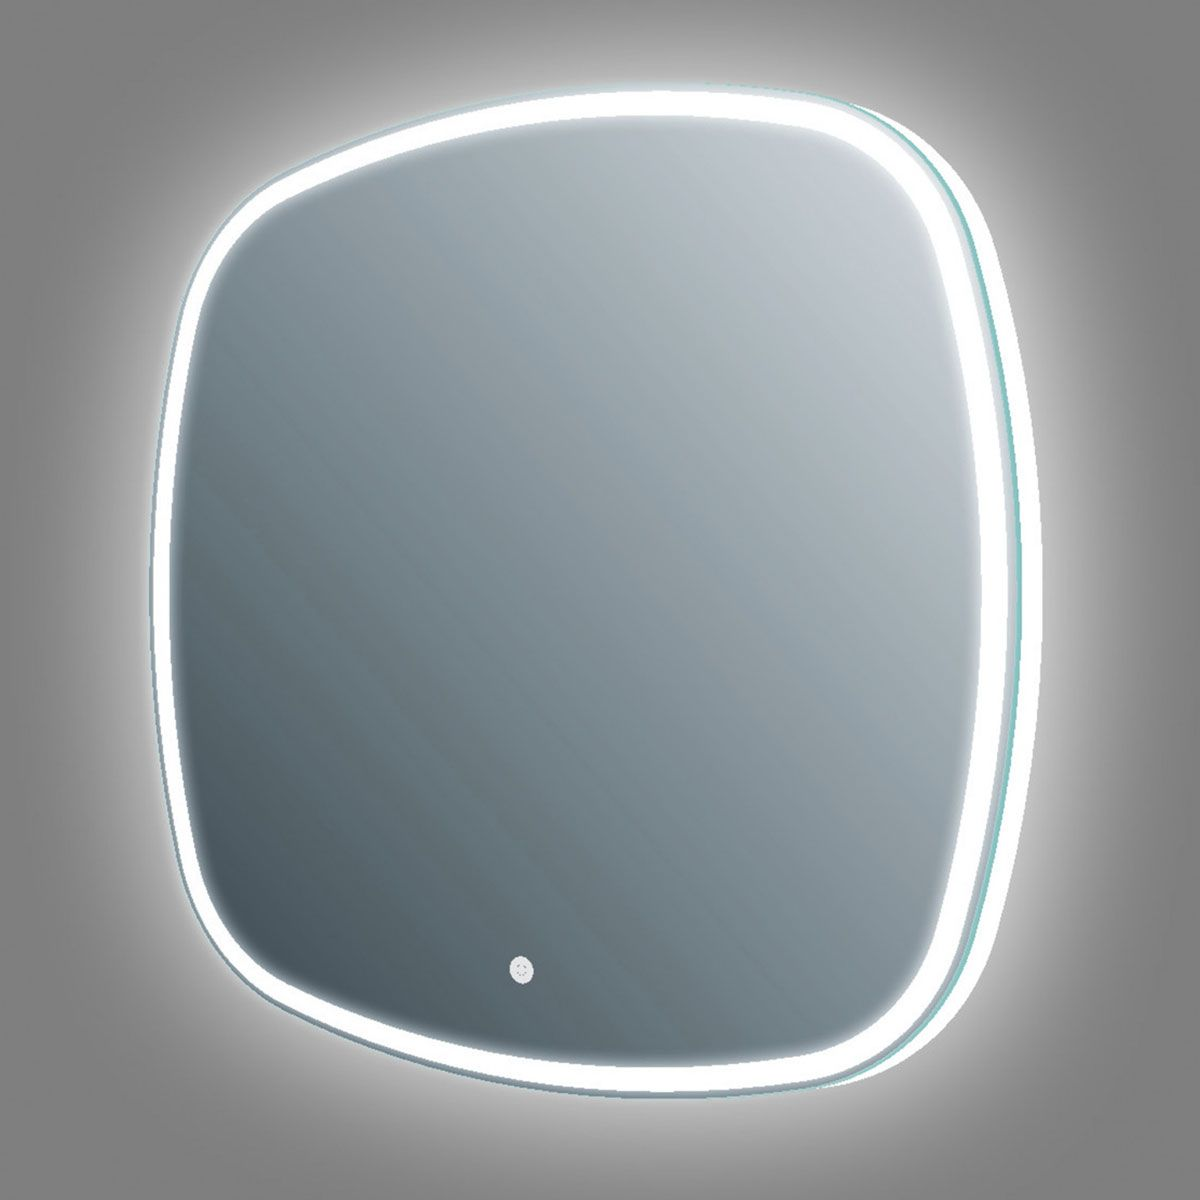 Frontline Opel Rounded LED Mirror